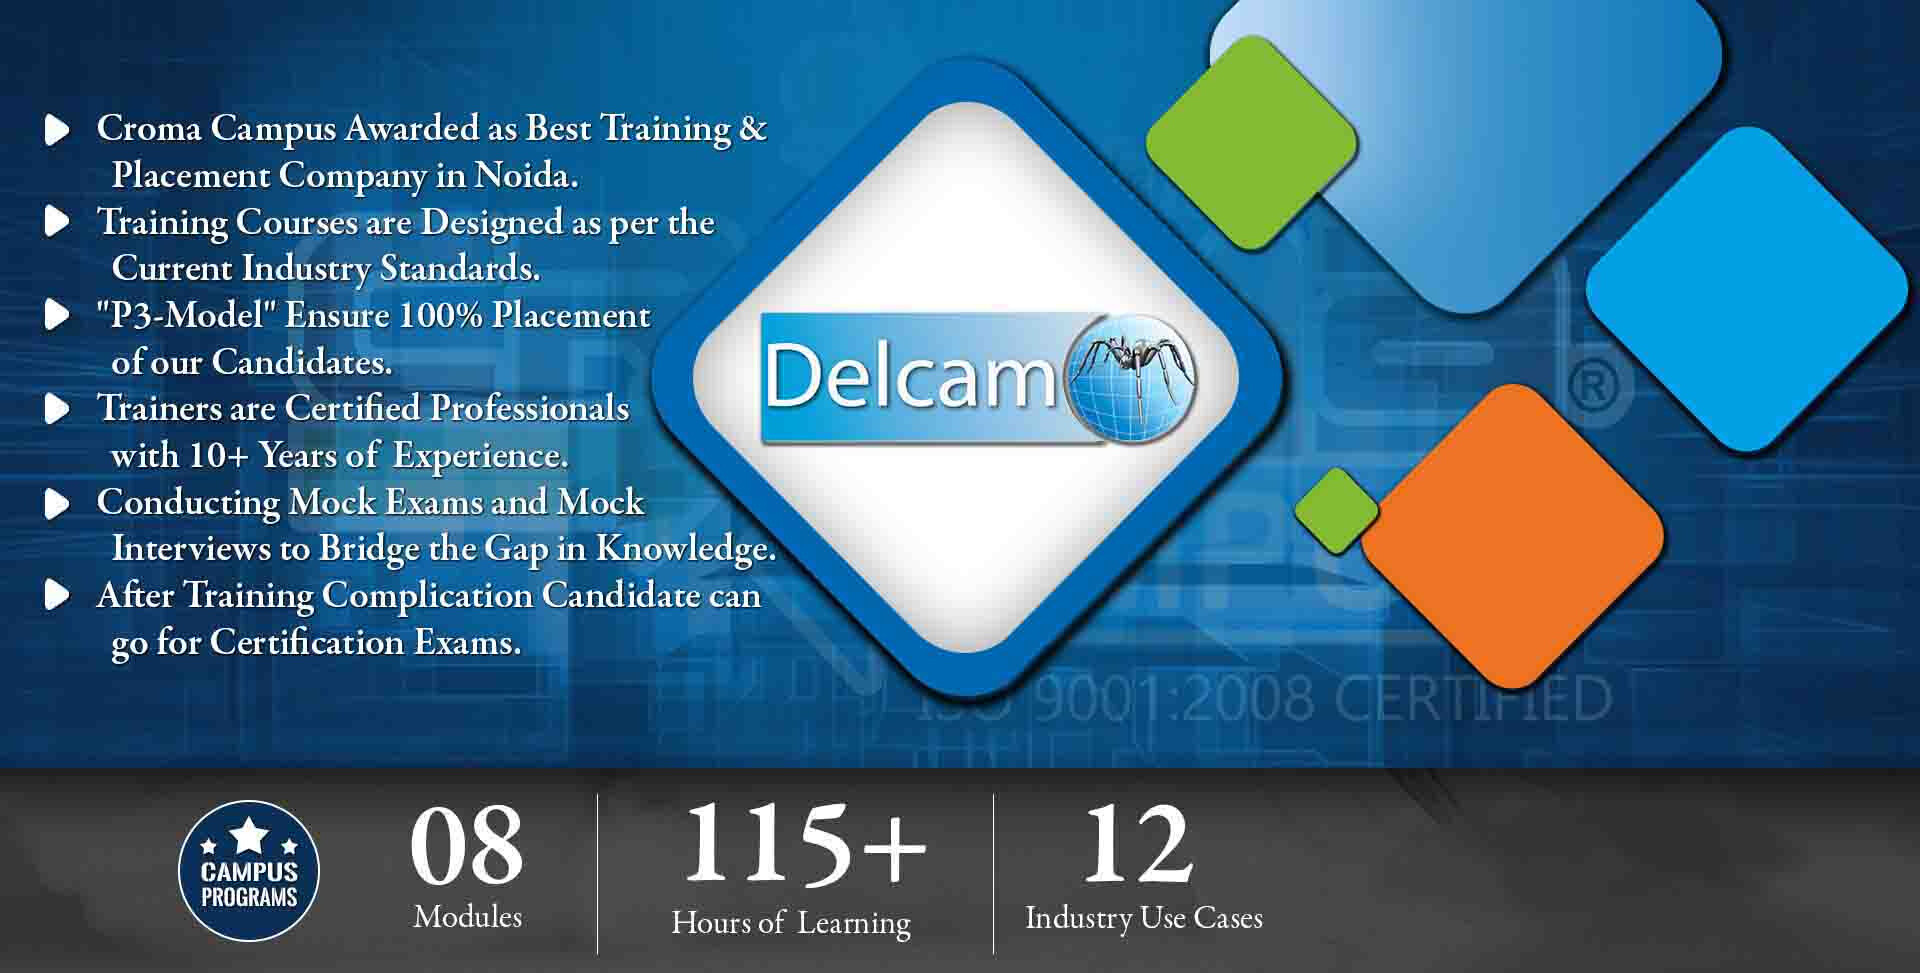 What are the benefits of the Delcam Training?